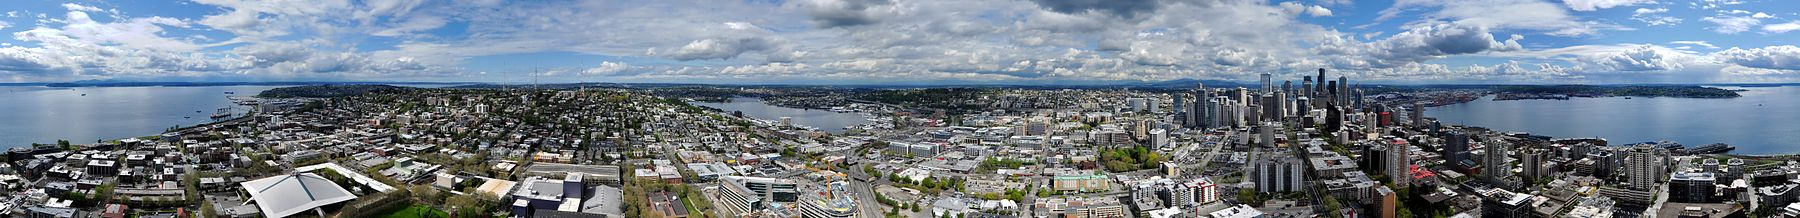 Panorama of Seattle as seen from the Space Needle: a nearly 360-degree view that includes (from left) Puget Sound, Magnolia, Queen Anne Hill, Lake Union, Capitol Hill, downtown Seattle, Elliott Bay, and West Seattle.